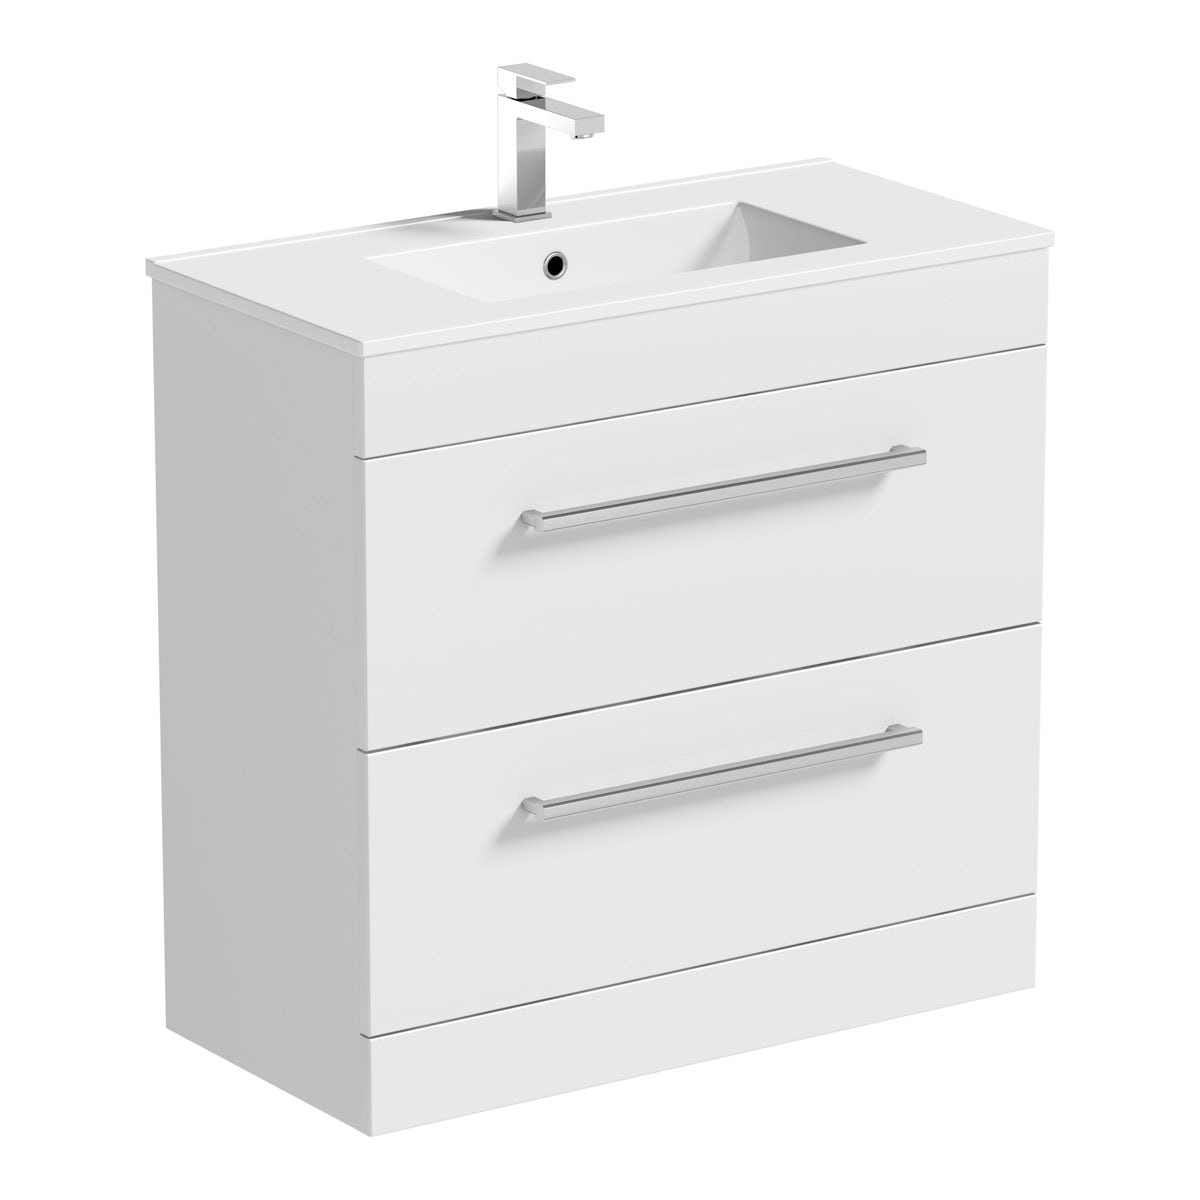 Orchard Derwent white vanity drawer unit and basin 800mm